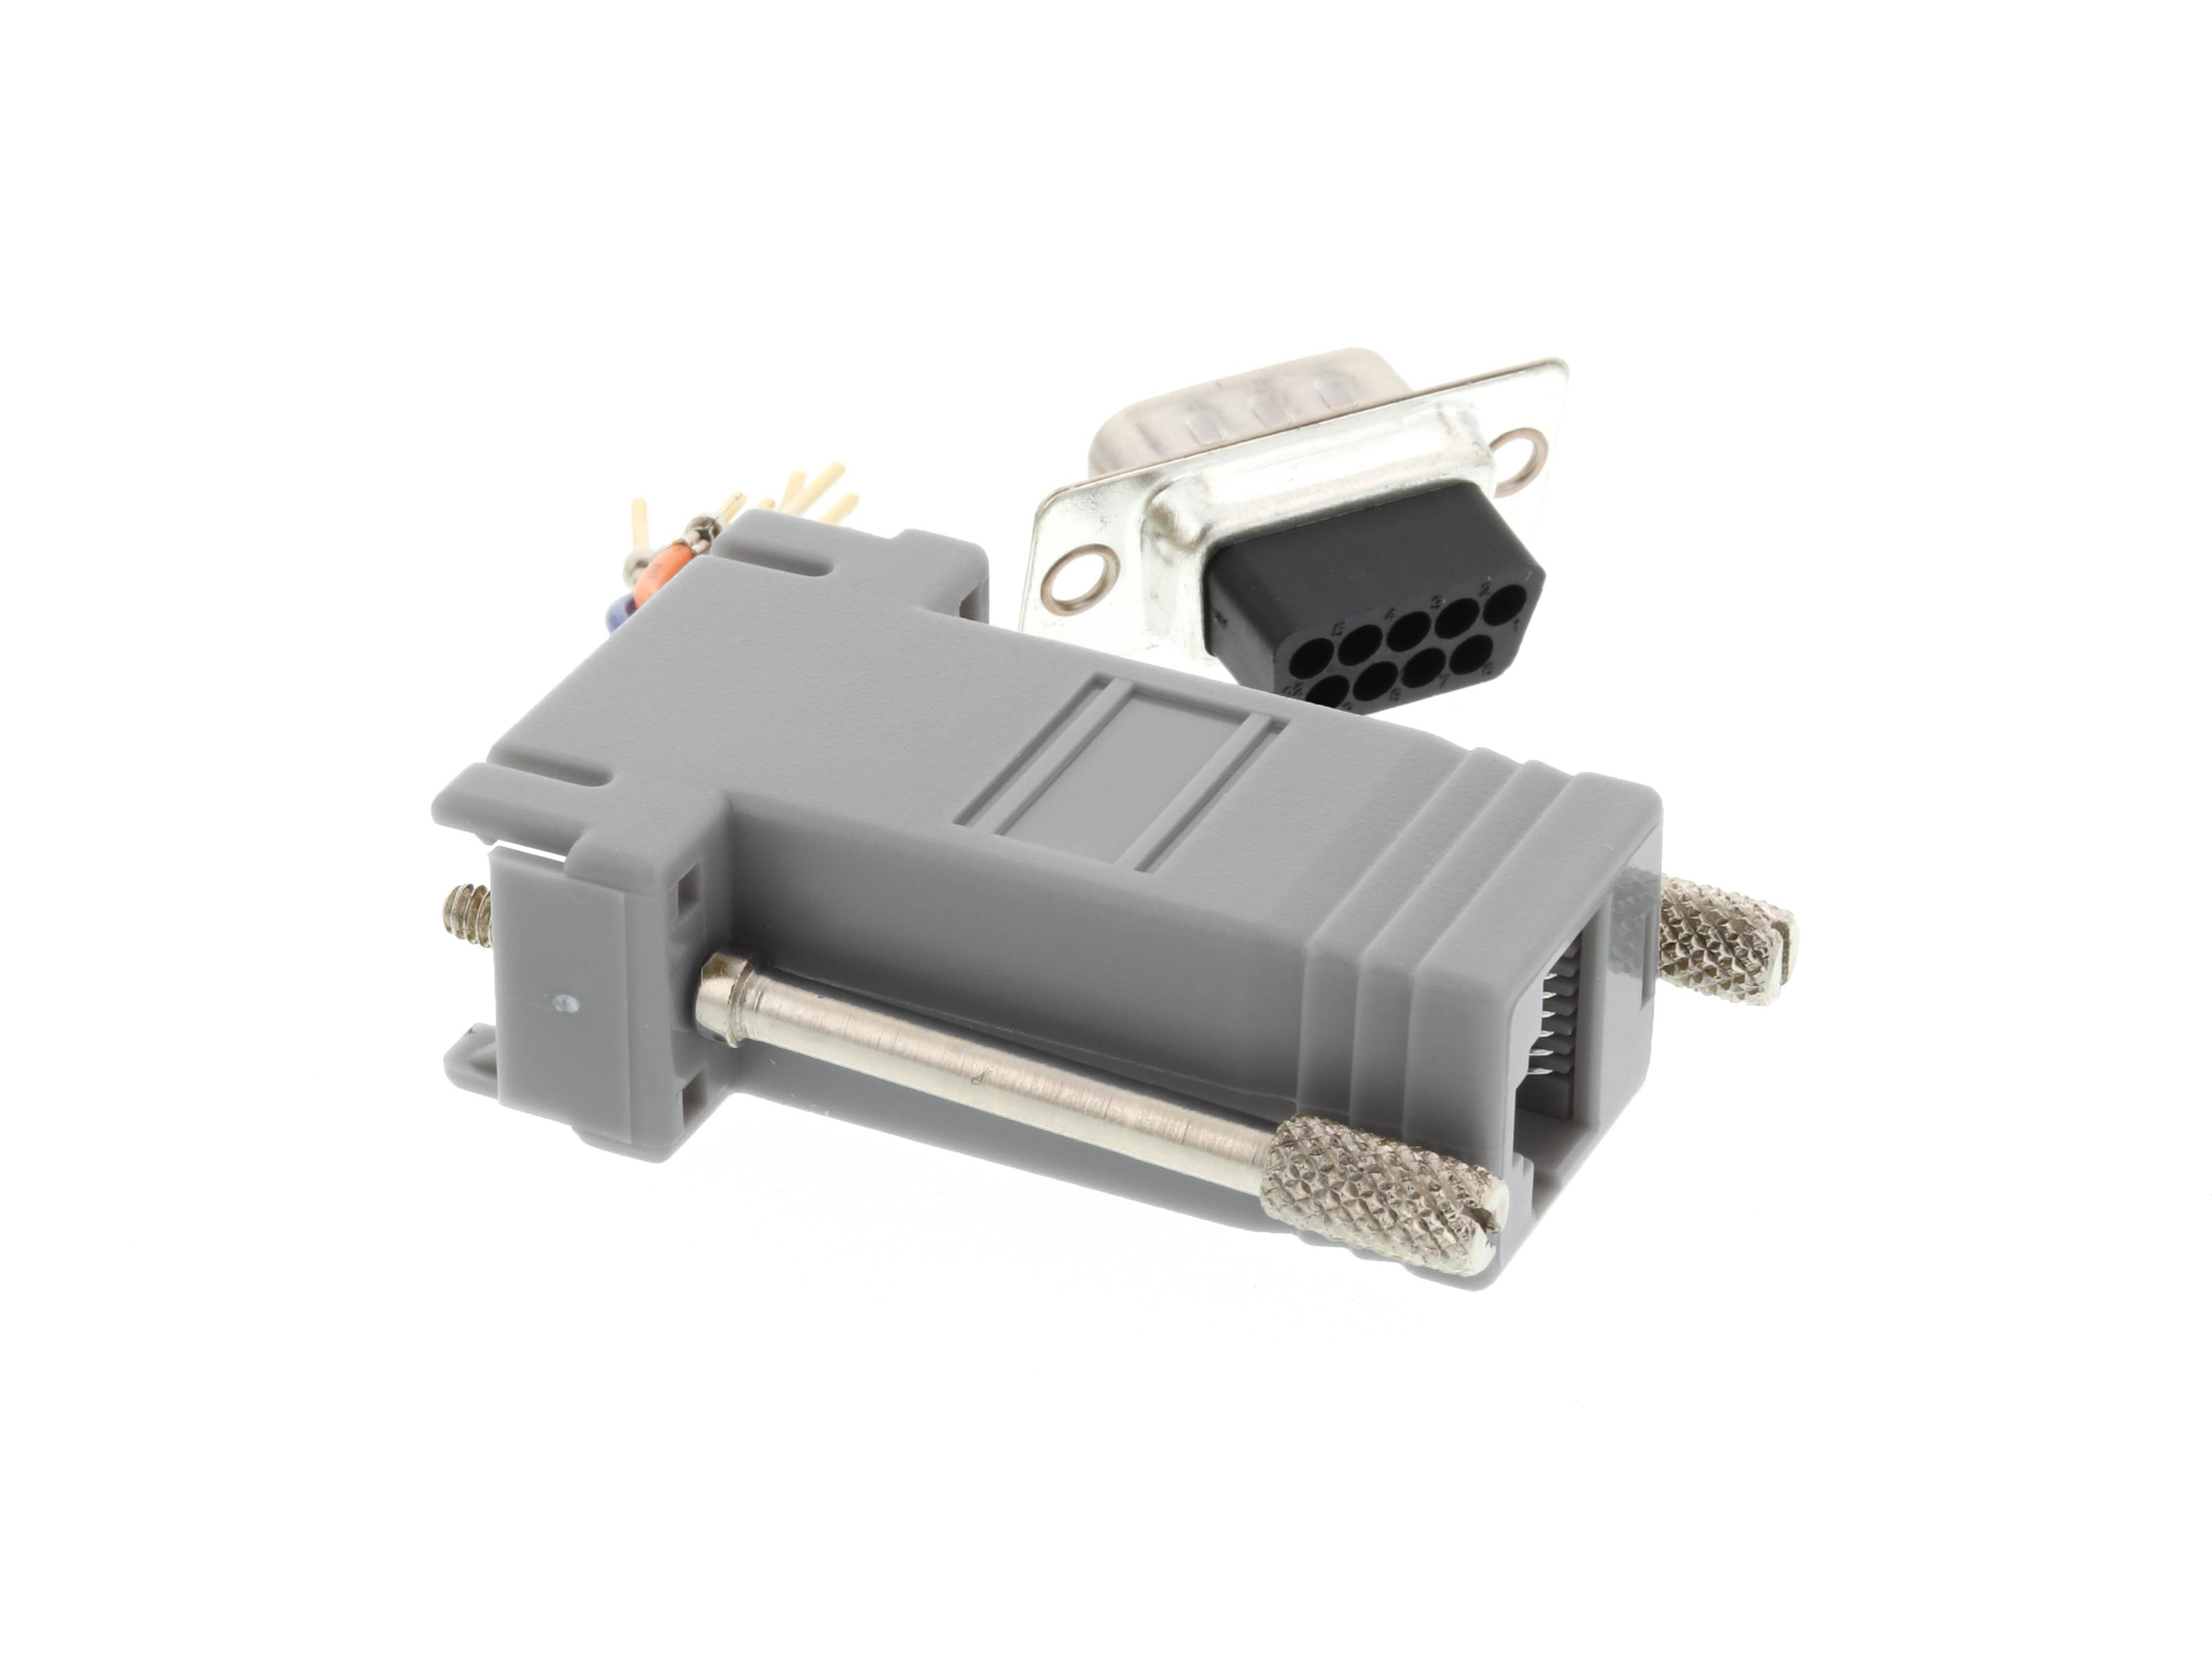 Modular Adapter Kit Db9 Male To Rj45 Gray Computer